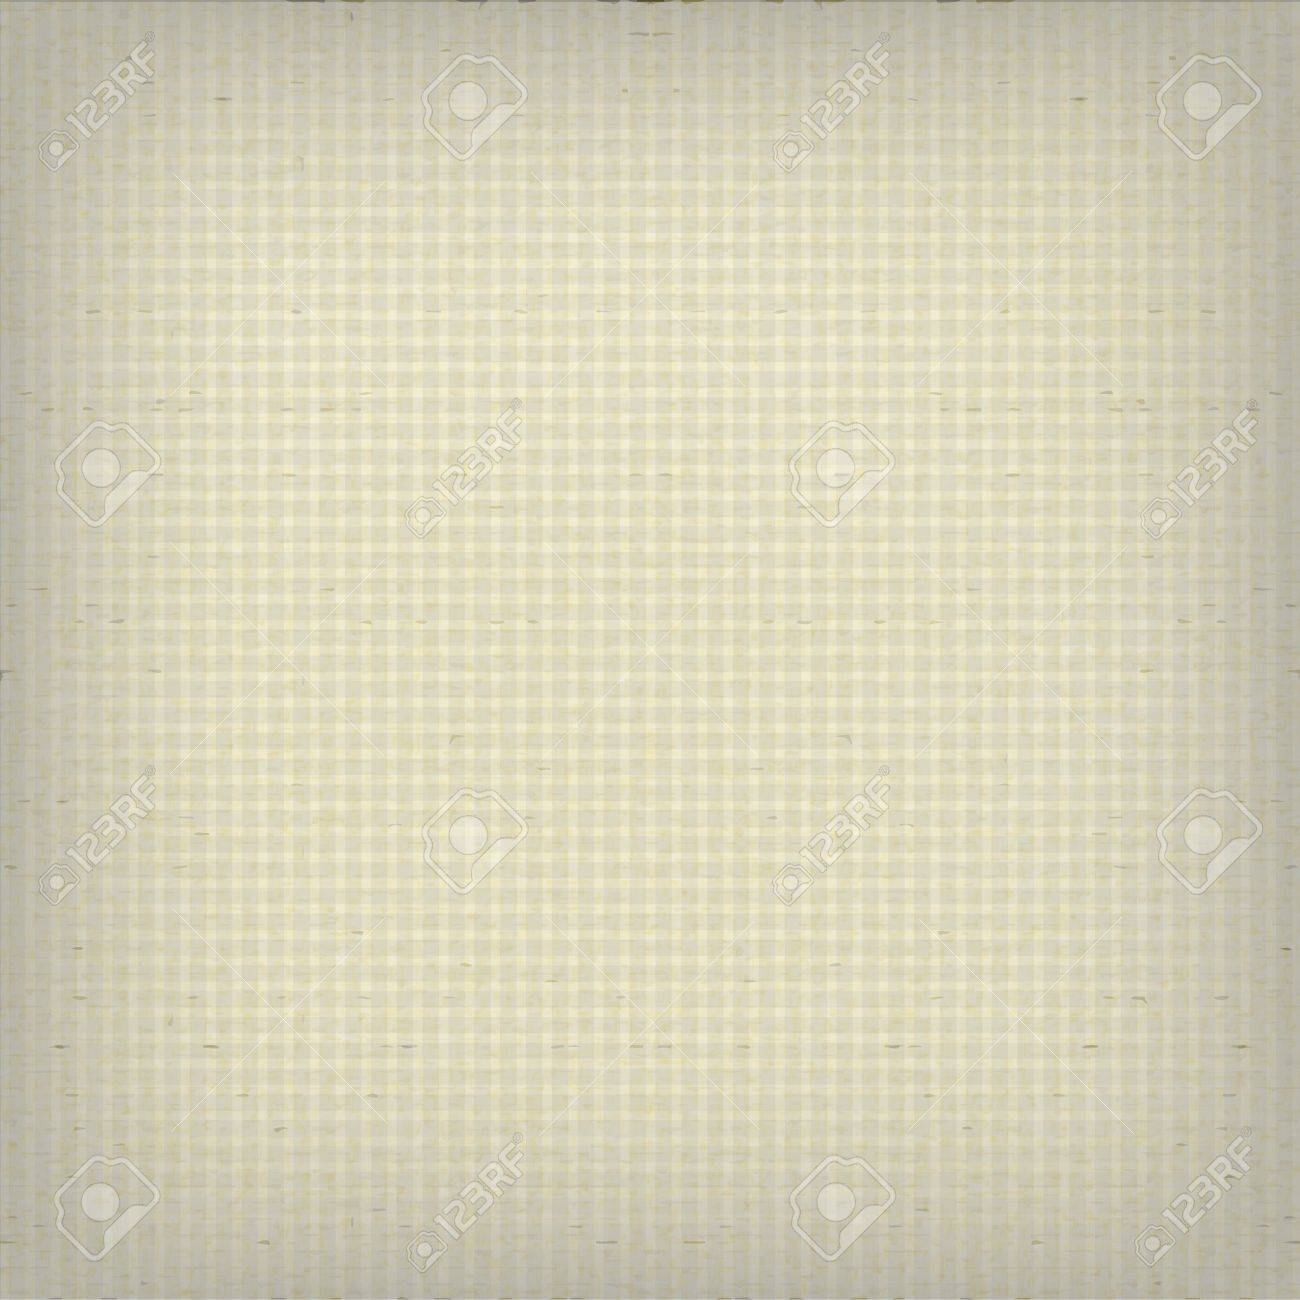 Textured old squared paper Stock Vector - 17607367